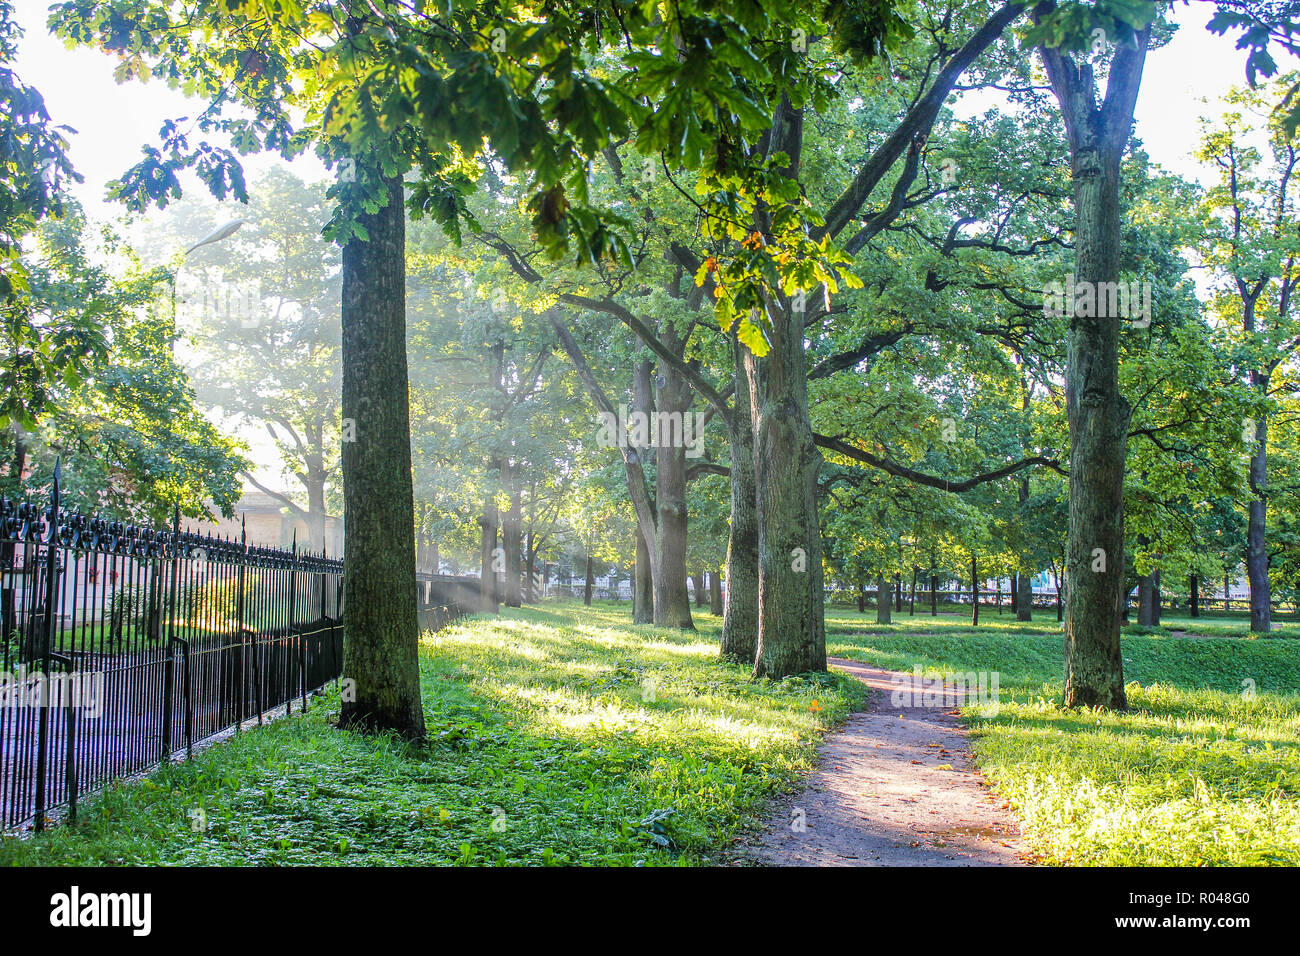 Summer park path. Green trees, stone paths. Walk in the fresh air. Summer background screensaver Stock Photo